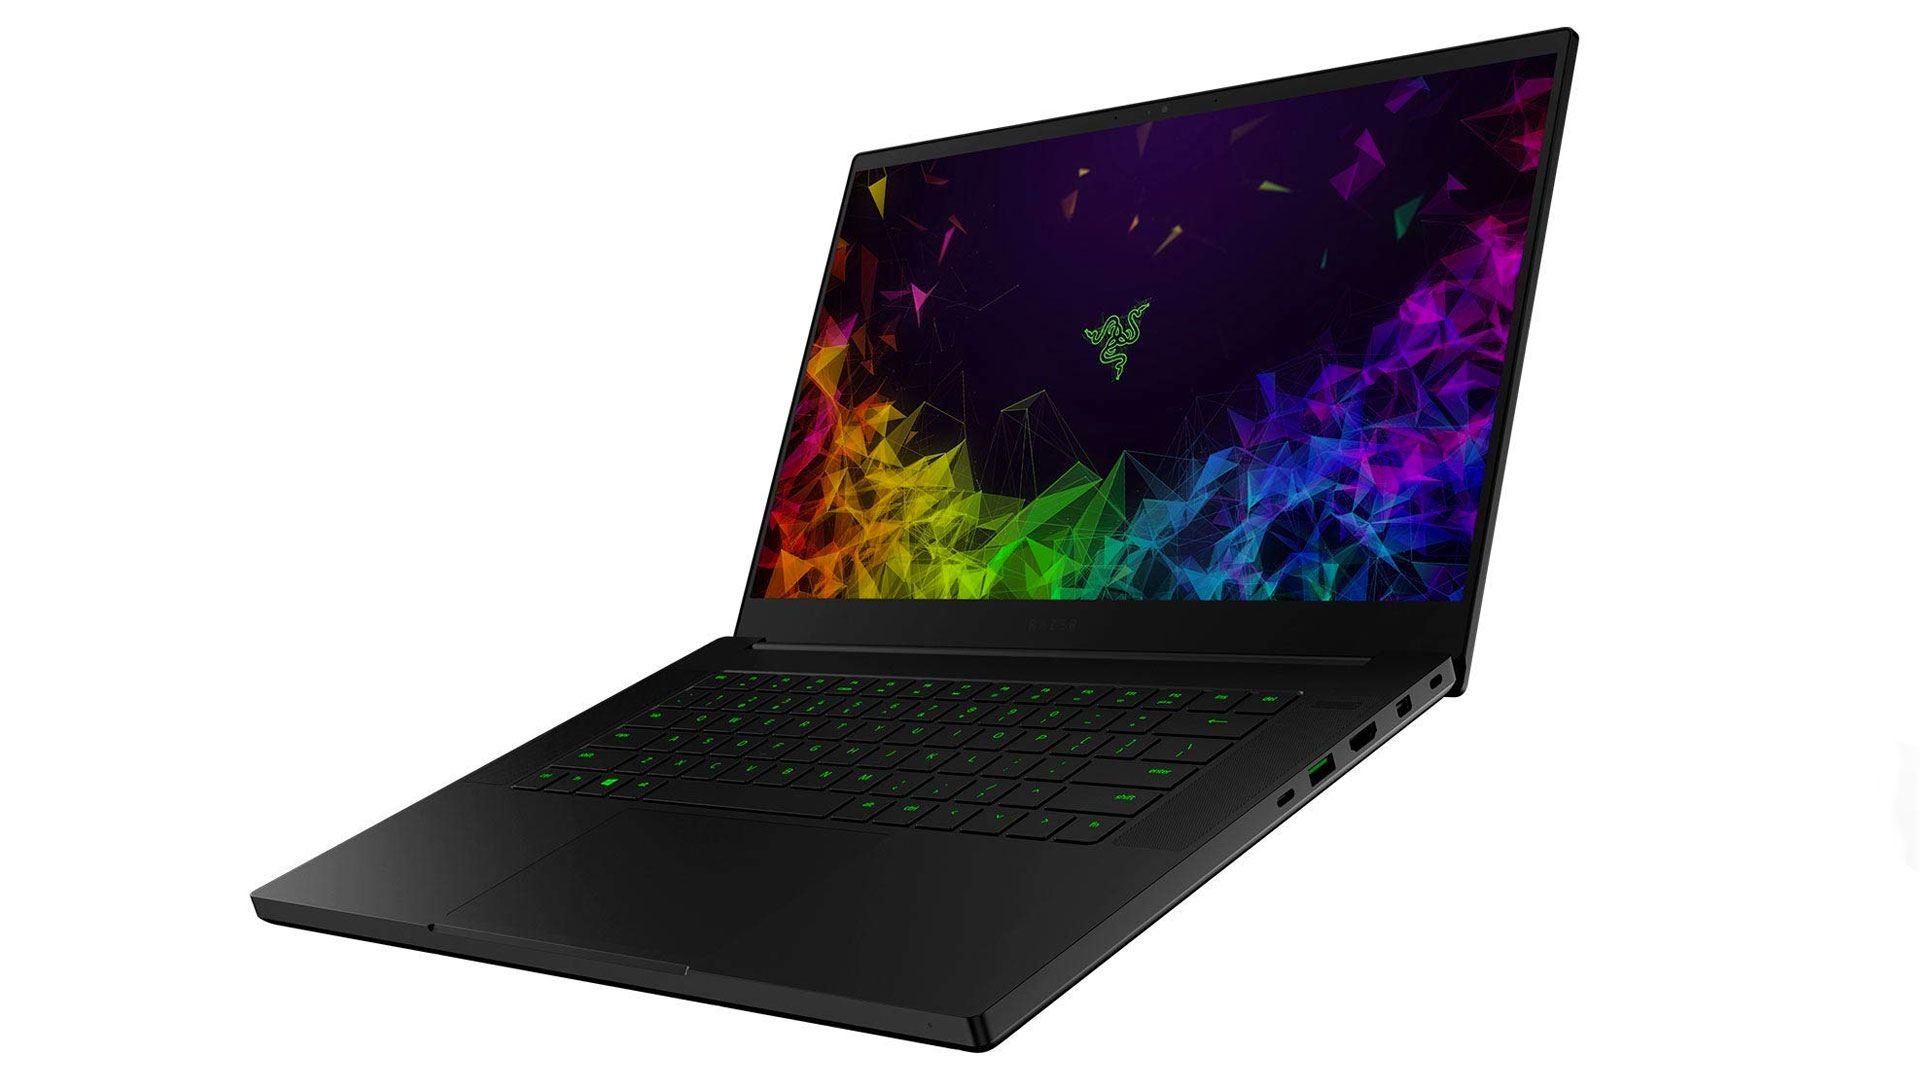 The sleek Razer Blade 15 gaming laptop drops to lowest price